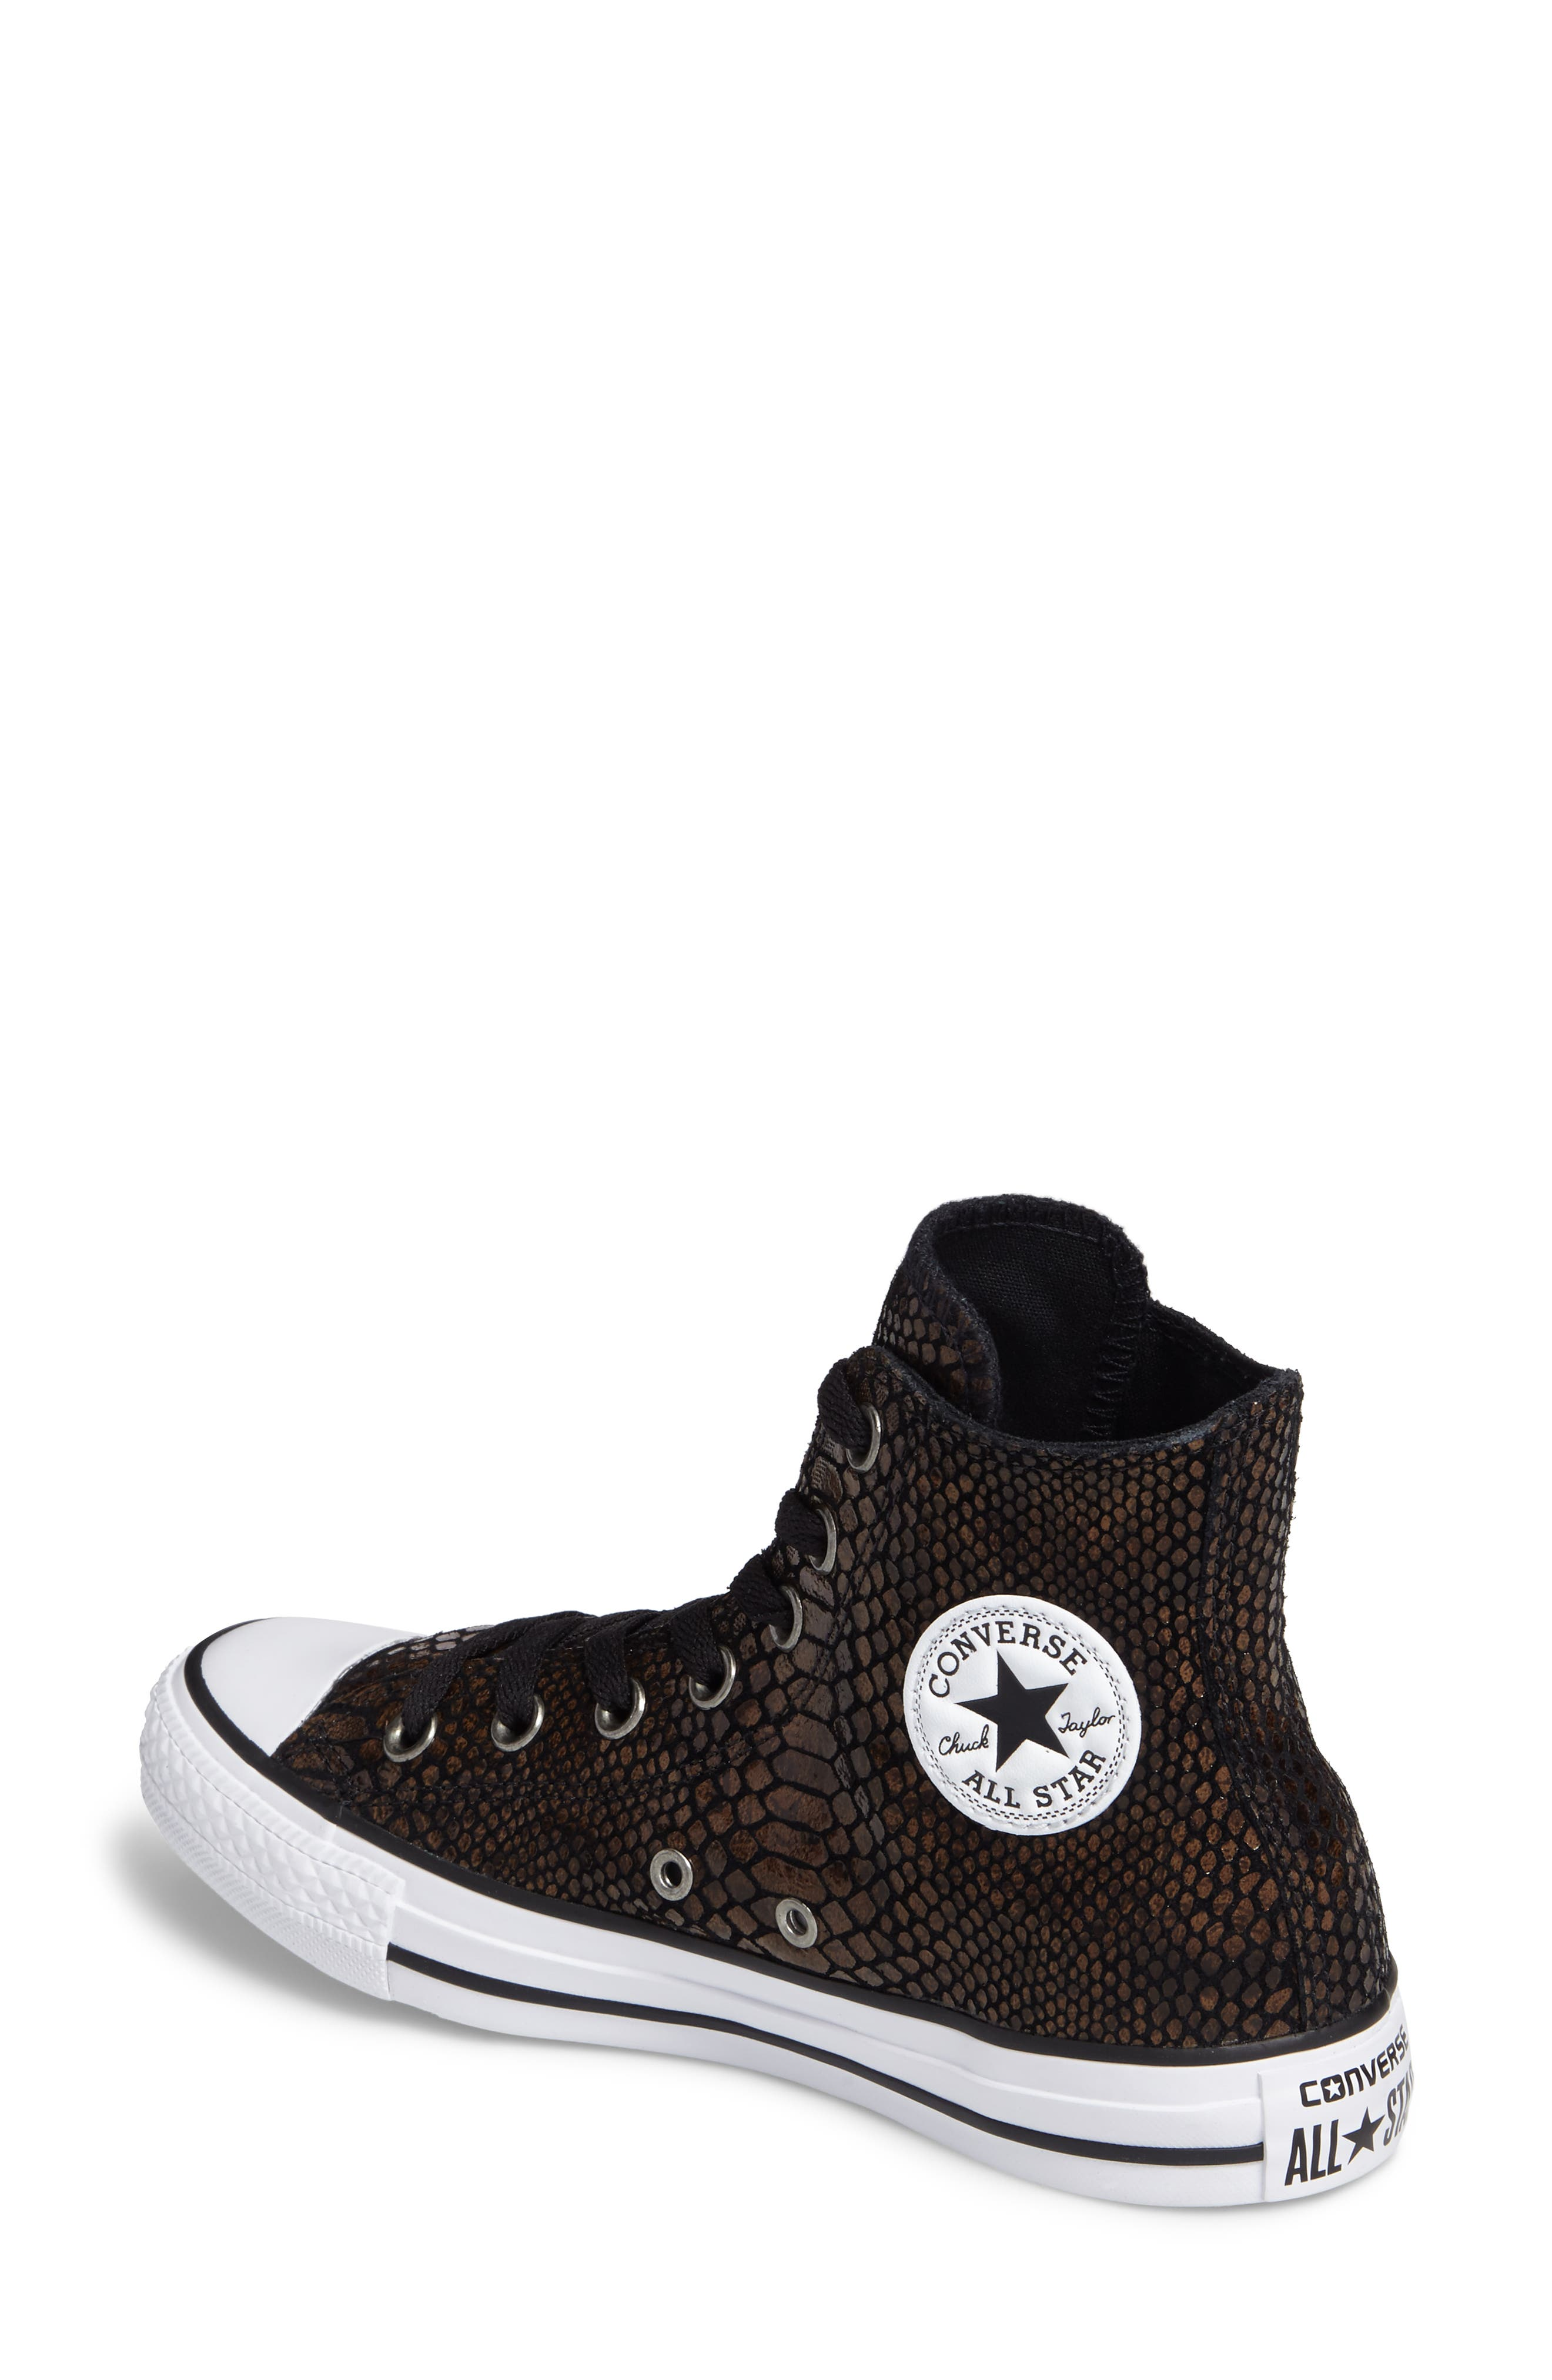 Chuck Taylor<sup>®</sup> All Star<sup>®</sup> Snake Embossed High Top Sneaker,                             Alternate thumbnail 2, color,                             200